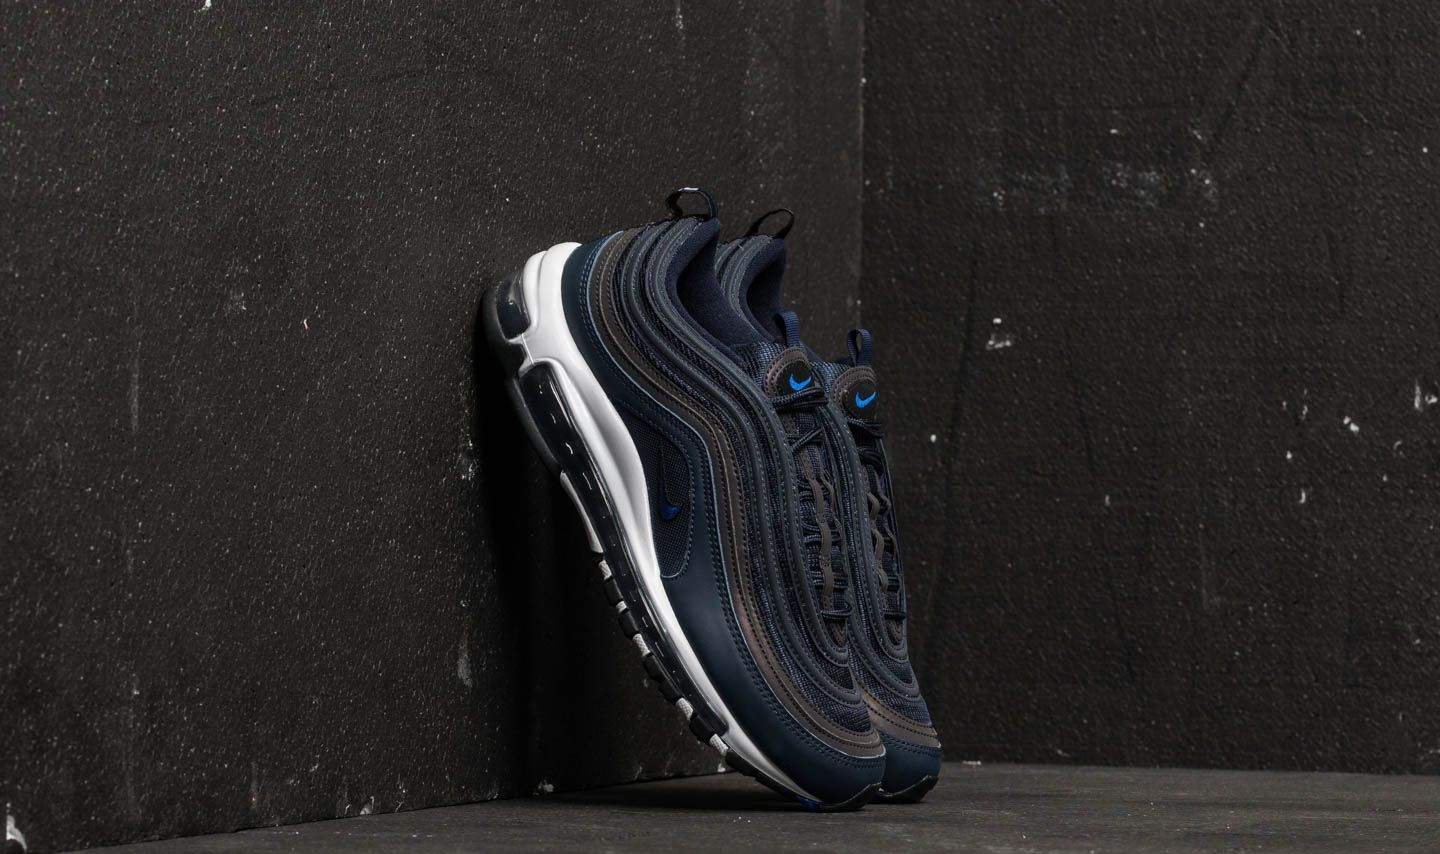 Buty Nike Air Max 97 (obsidianwhite black white)